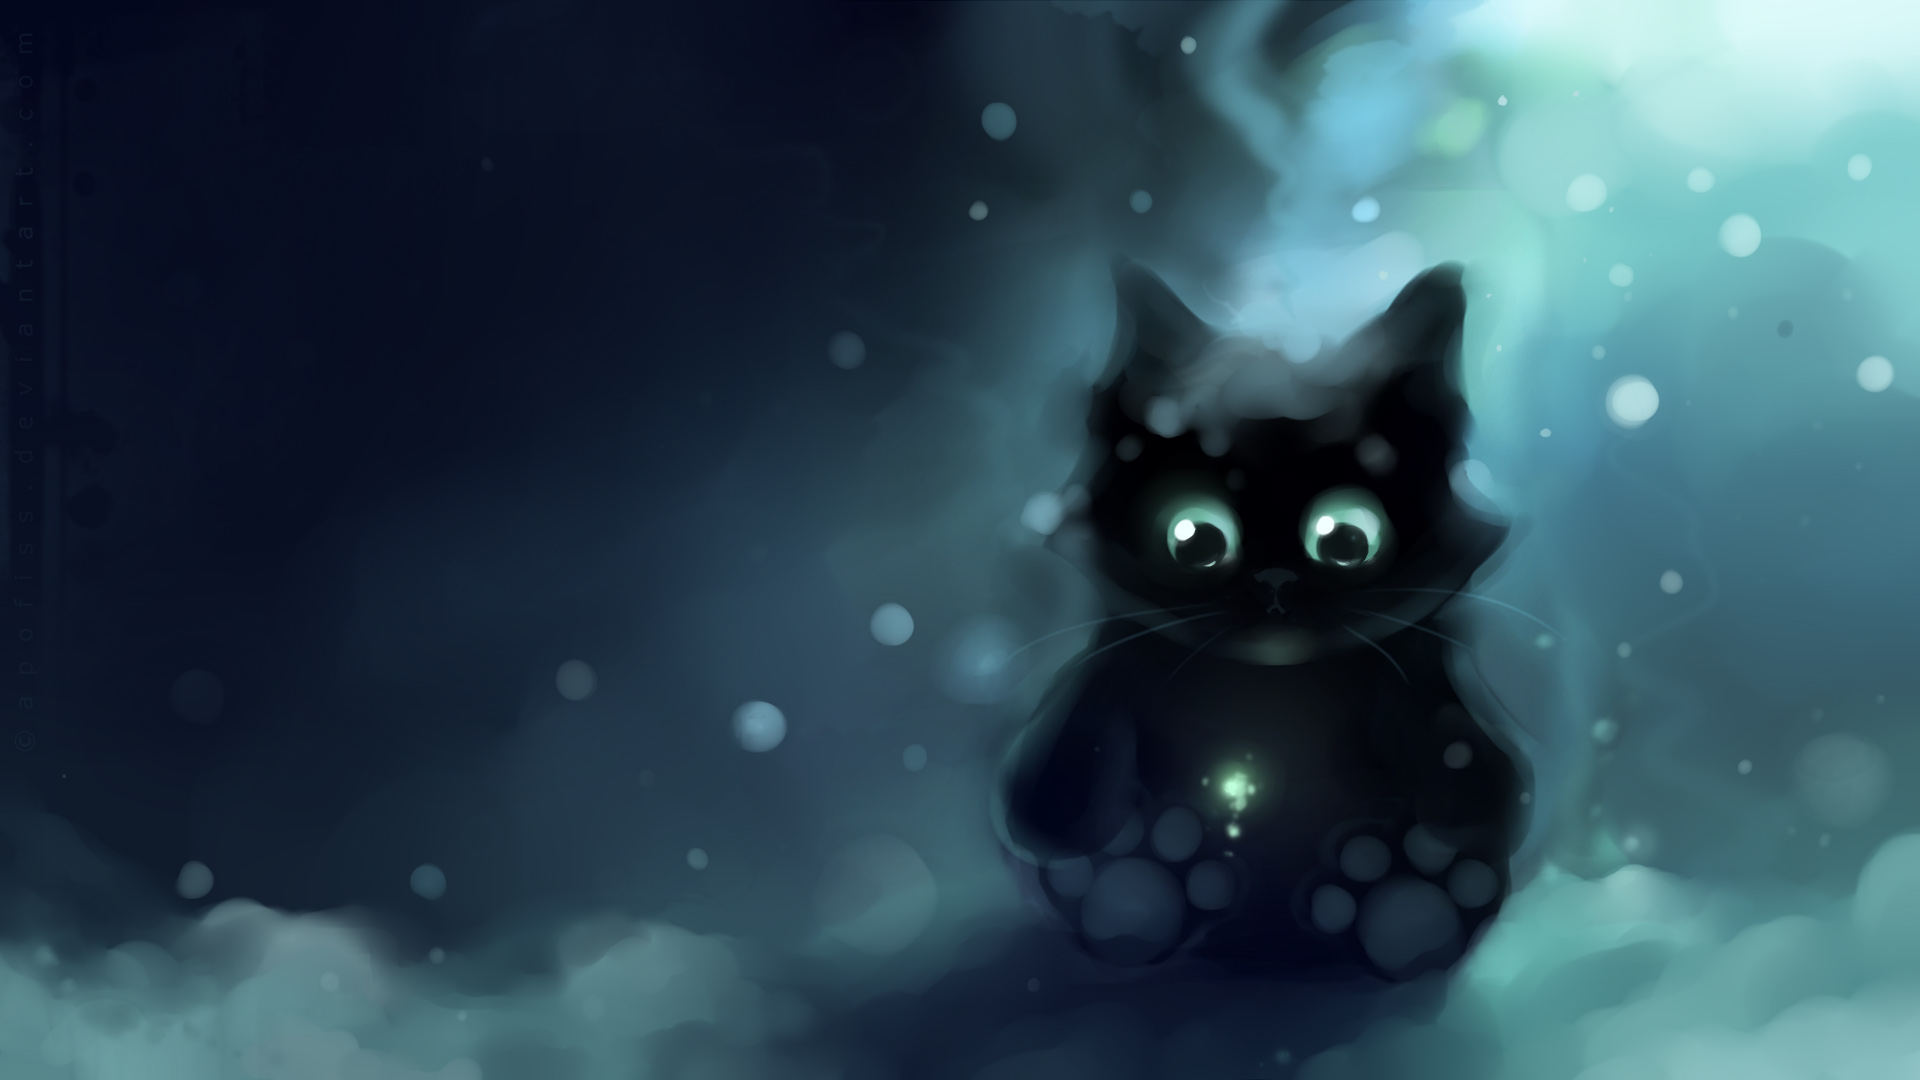 apofiss animals images black kitty 2 hd wallpaper and background photos